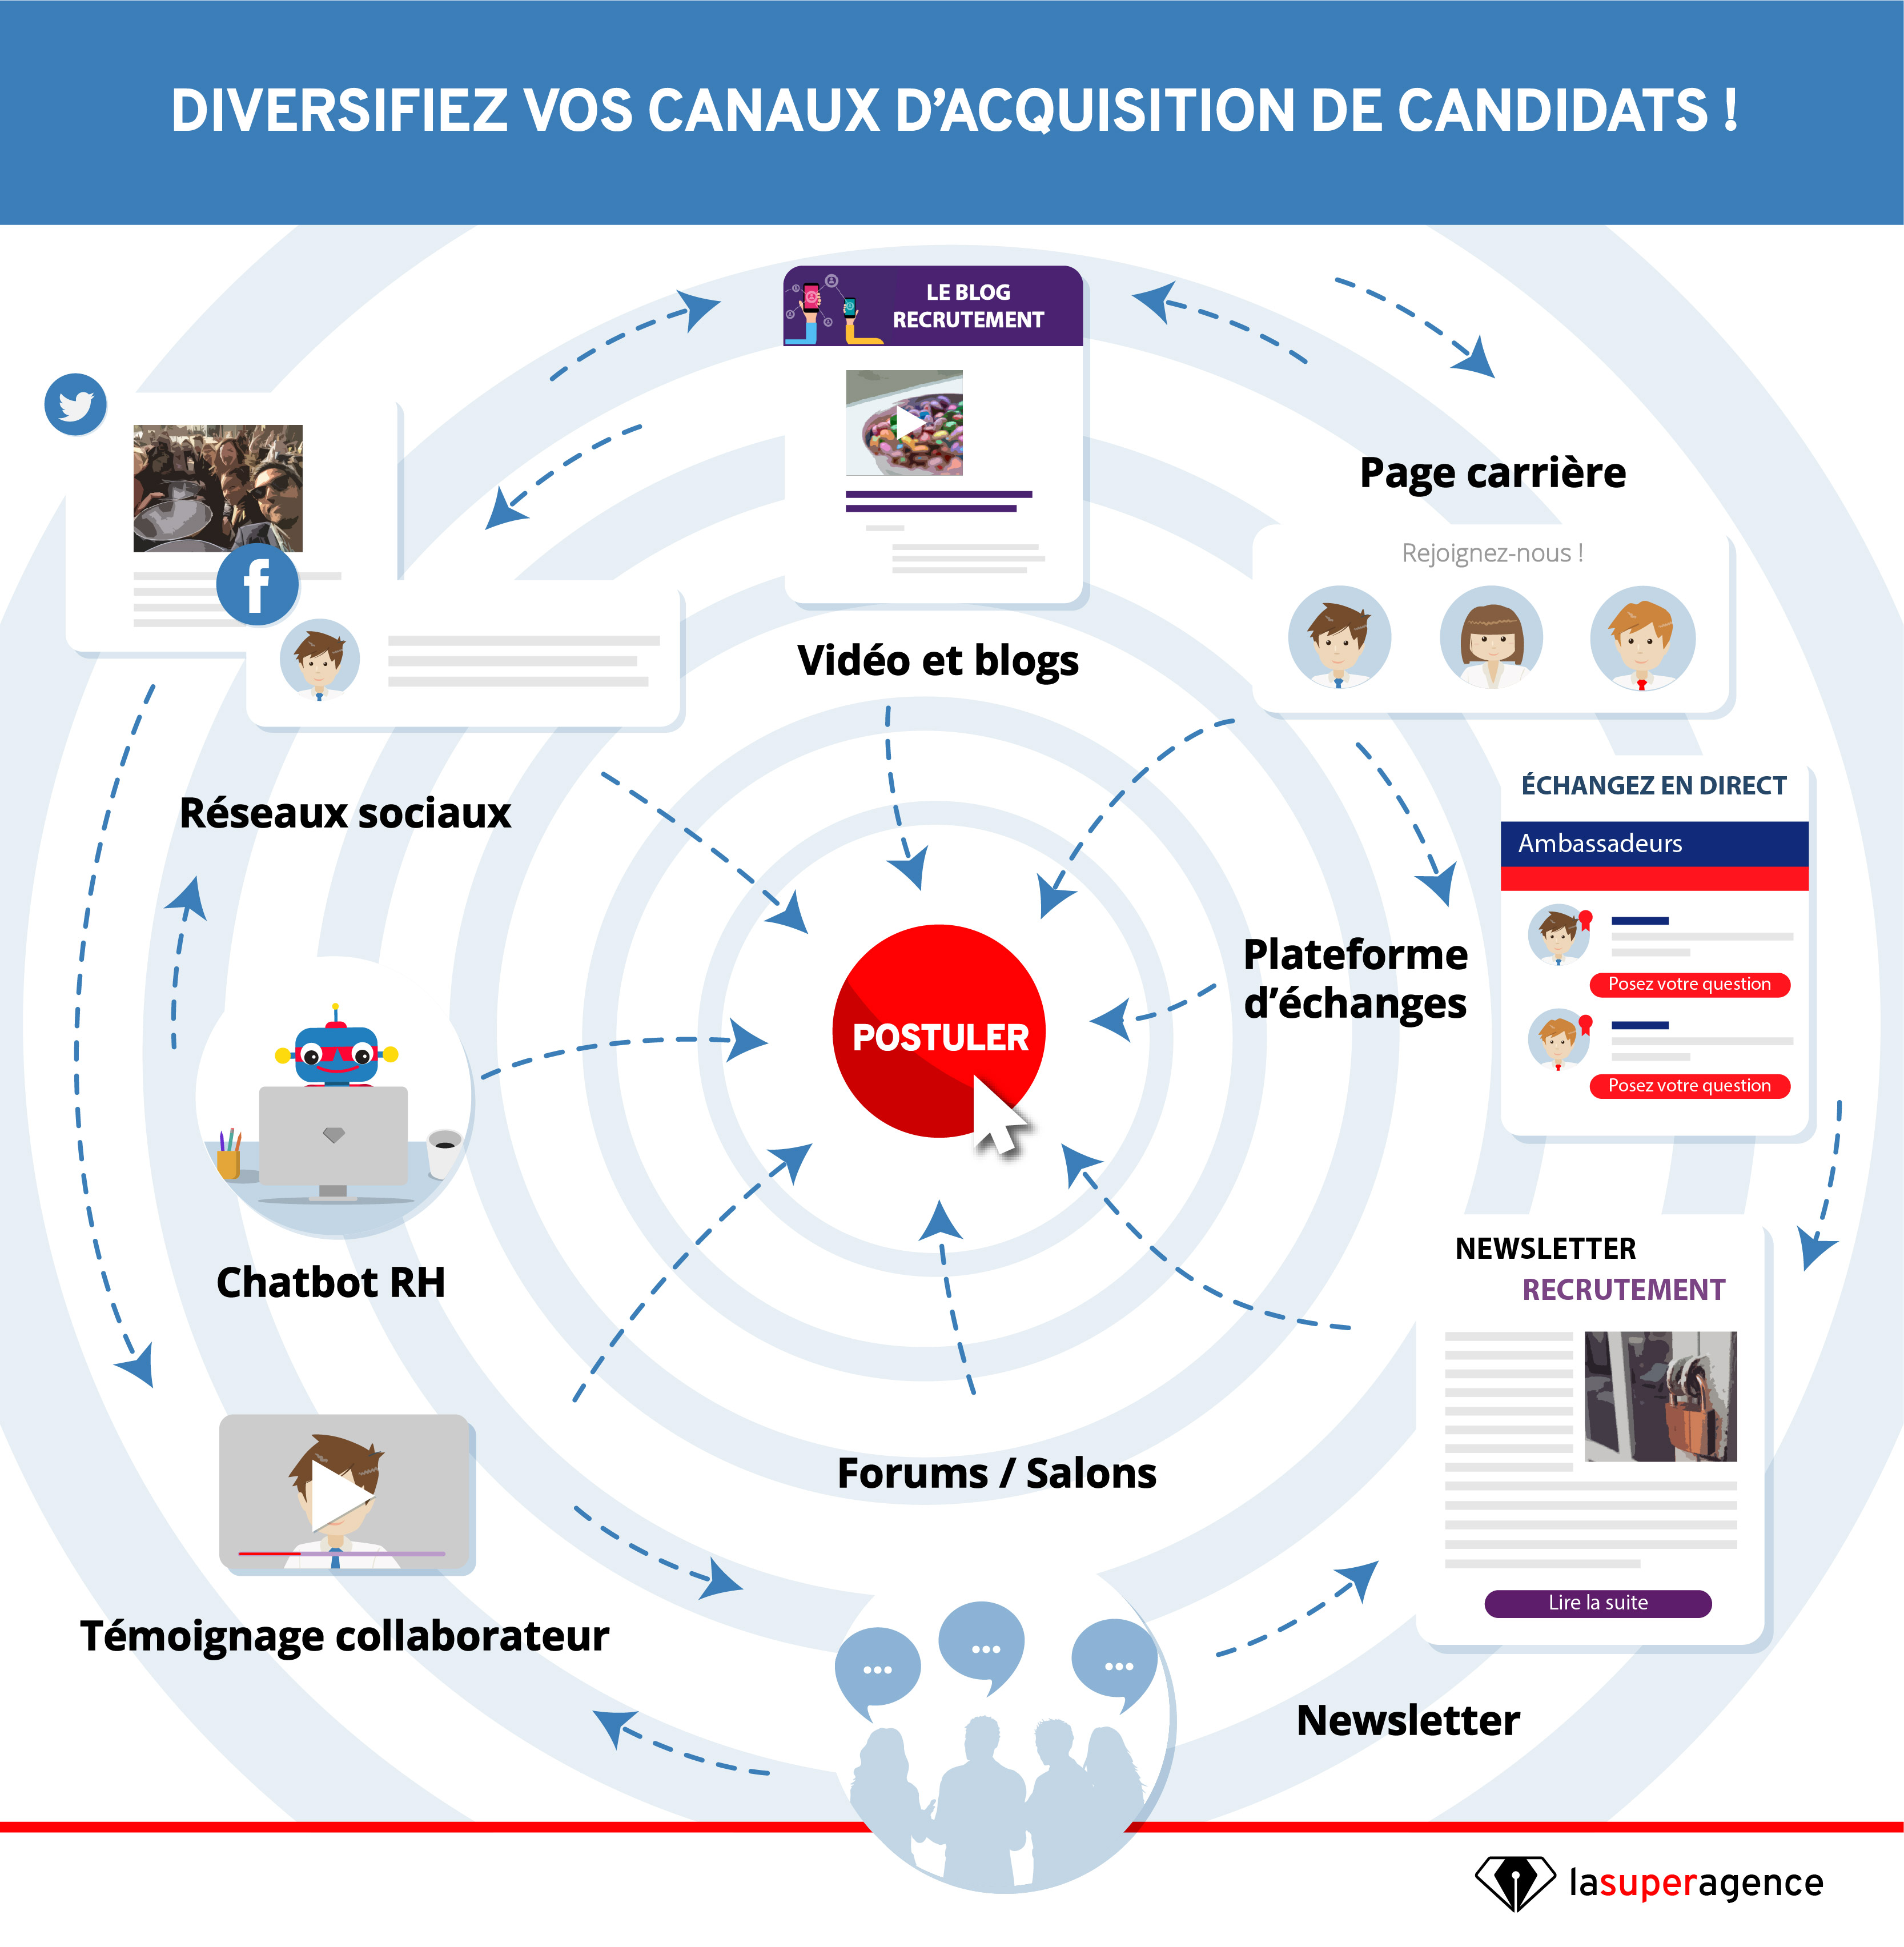 Canaux dacquisition-01